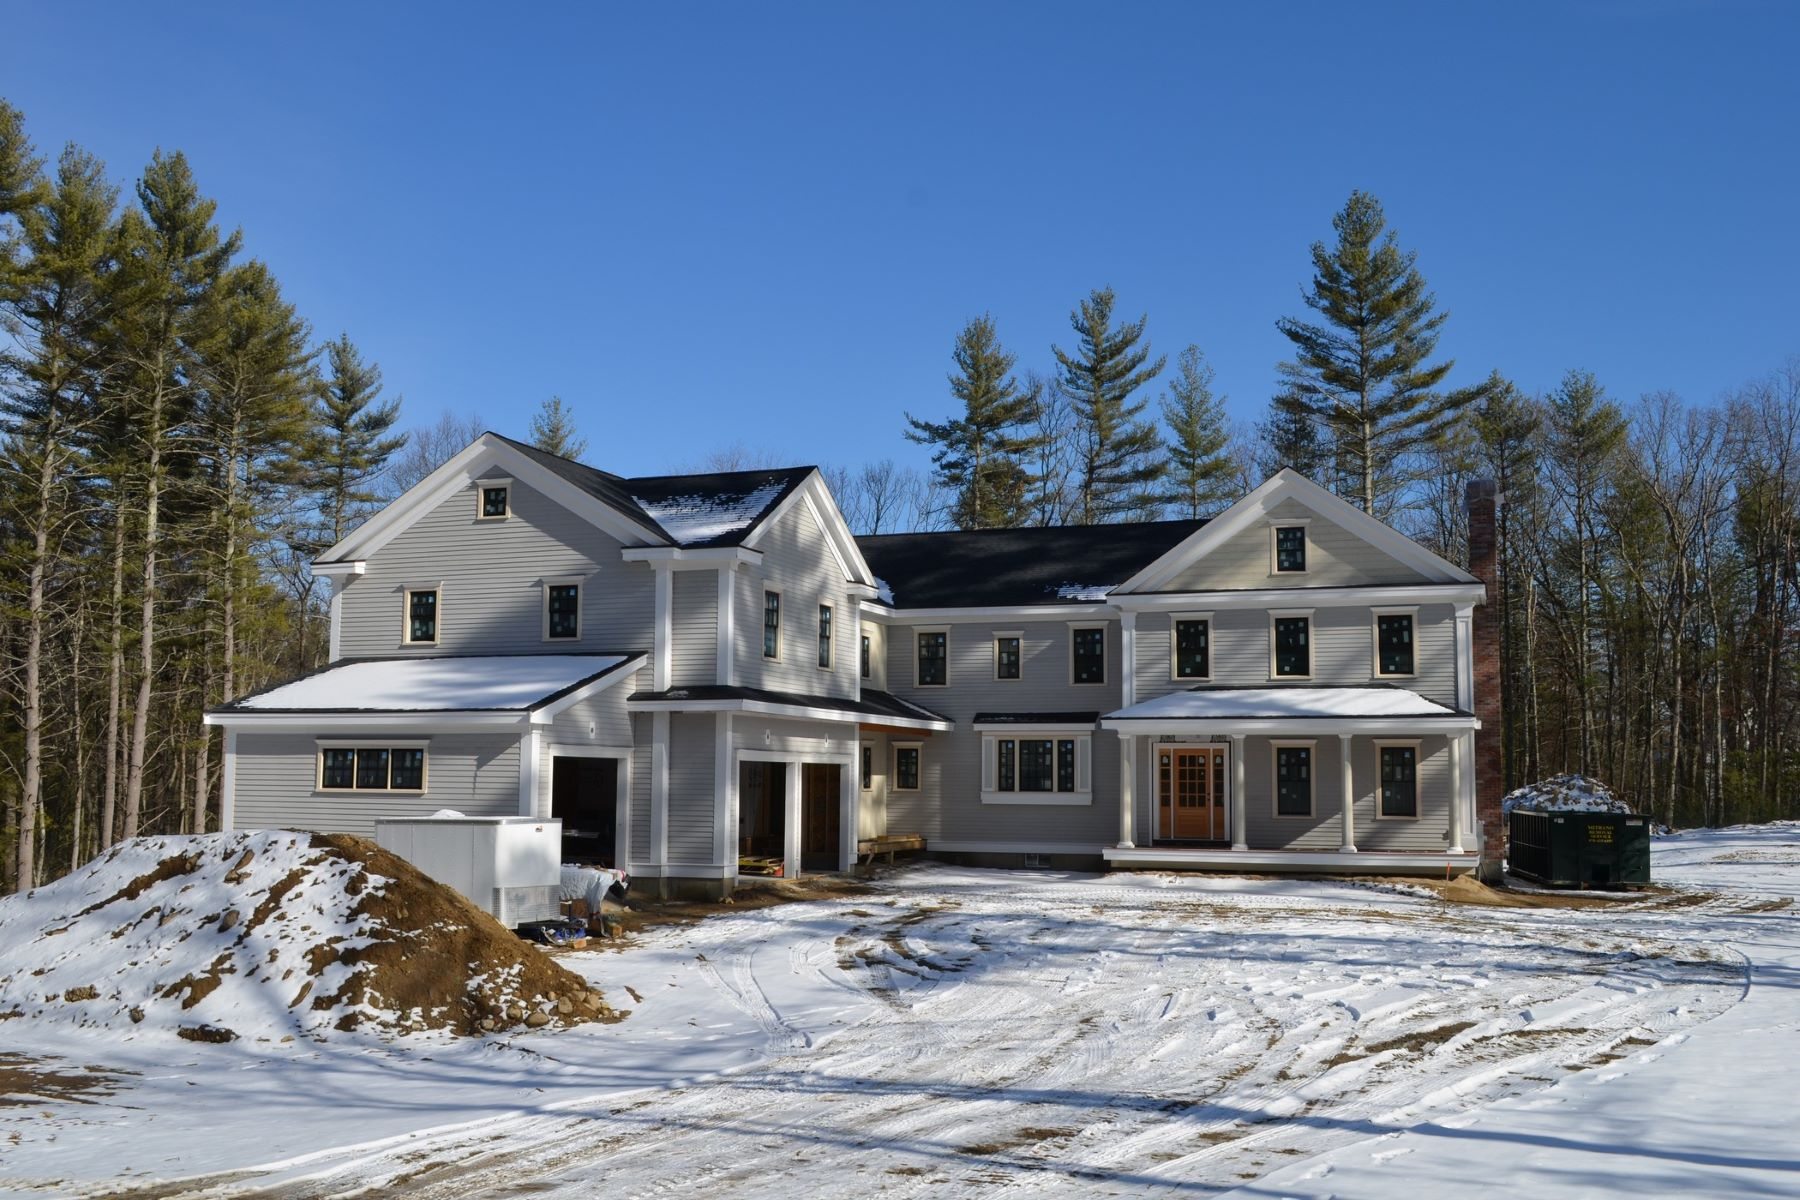 Single Family Home for Sale at Greystone Crossing - New Construction 148 Greystone Lane Carlisle, Massachusetts 01741 United States